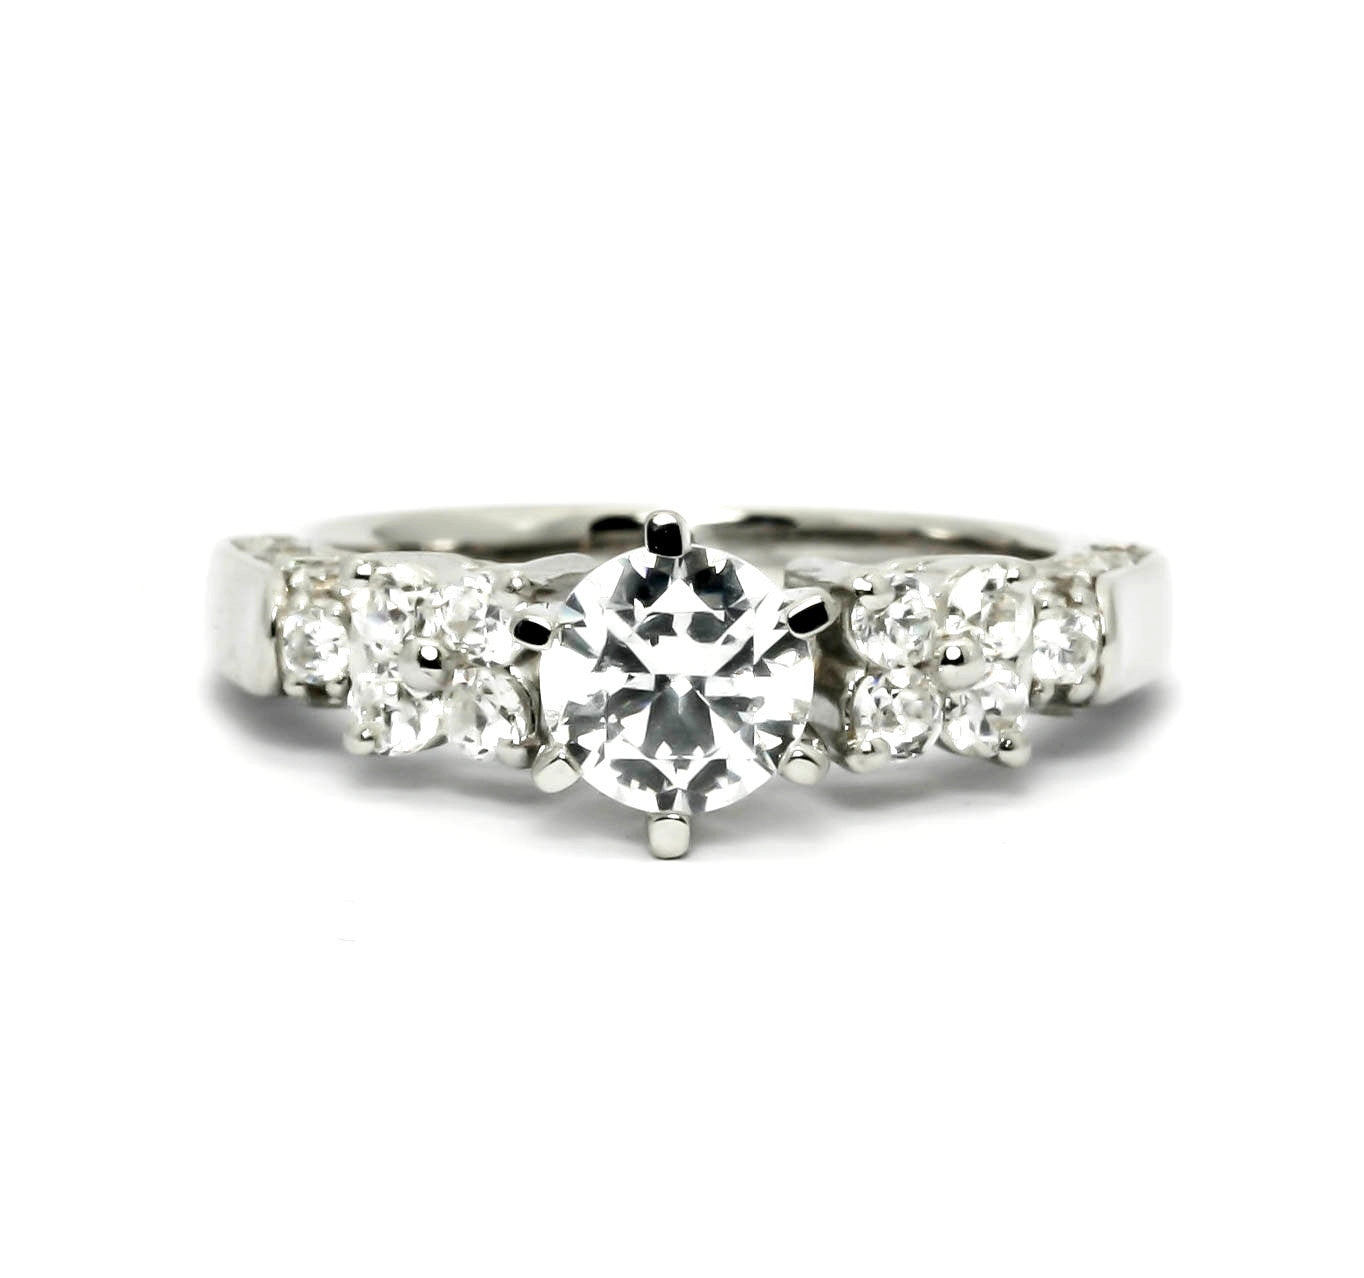 Moissanite Engagement Ring, Unique .75 Carat (6 mm)  Forever Brilliant Moissanite Center Stone & .70 Carat Diamonds, Anniversary Ring - FBY11601